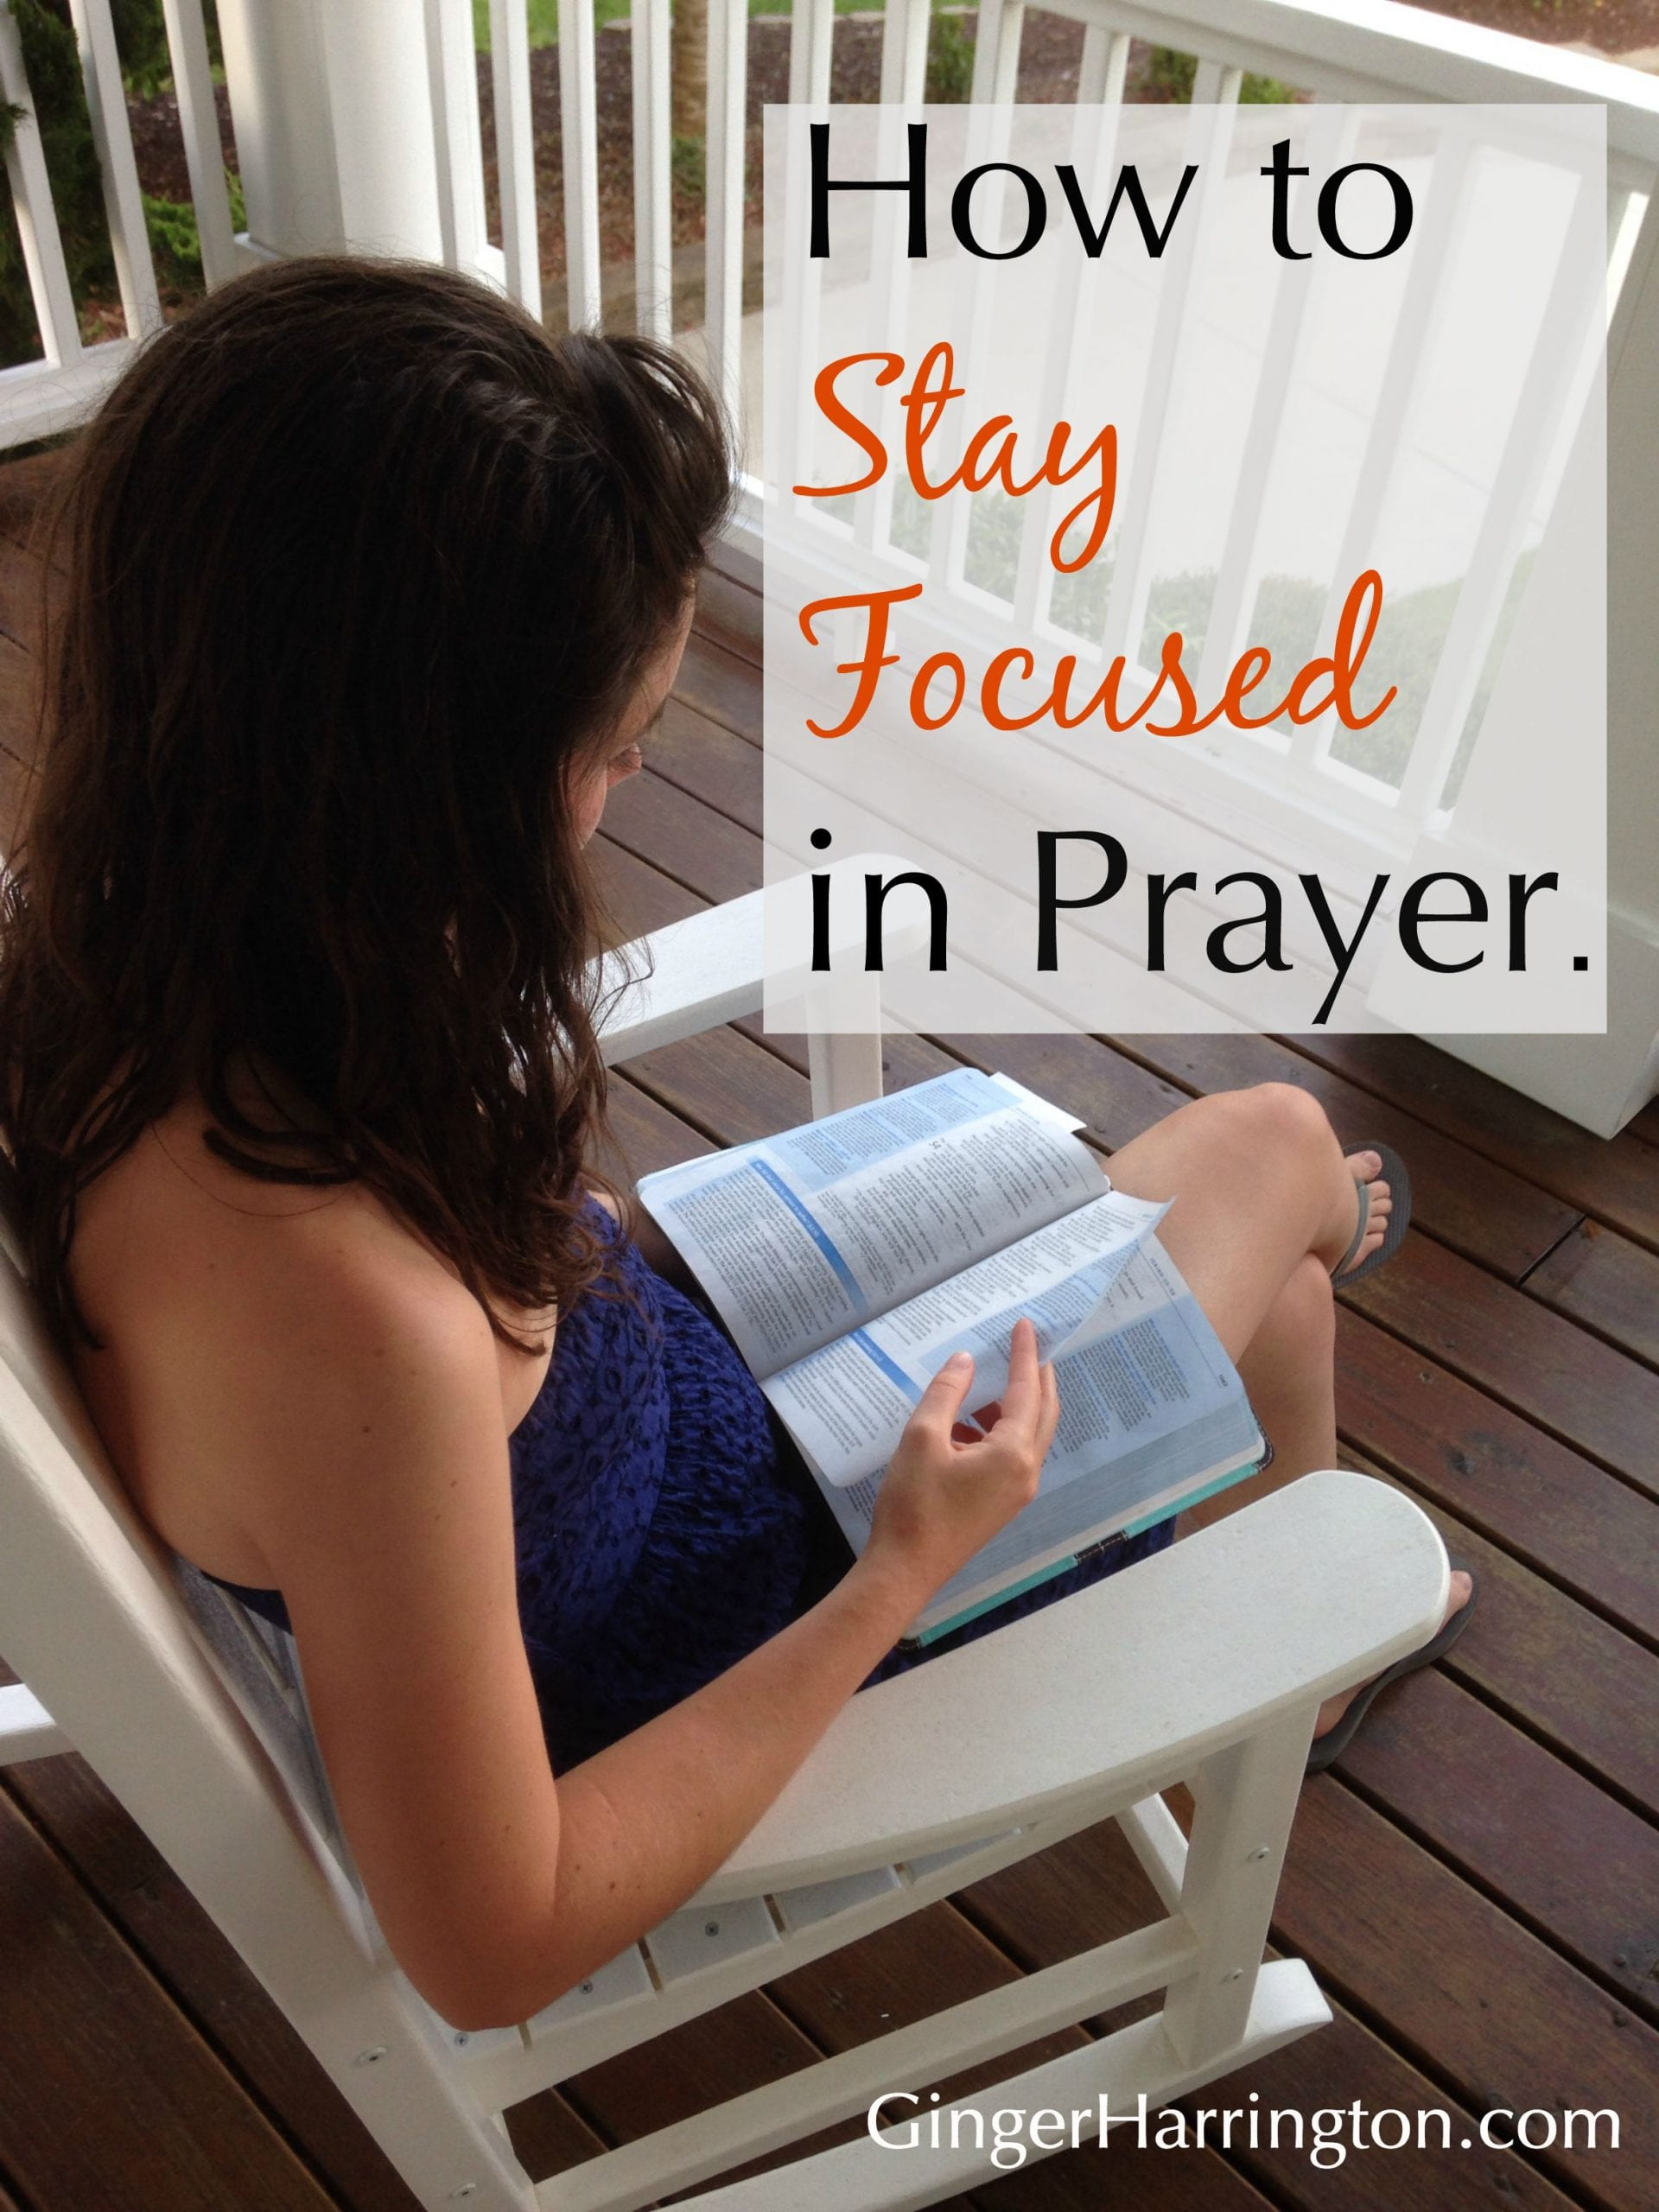 Overcome distractions and stay focused in prayer.